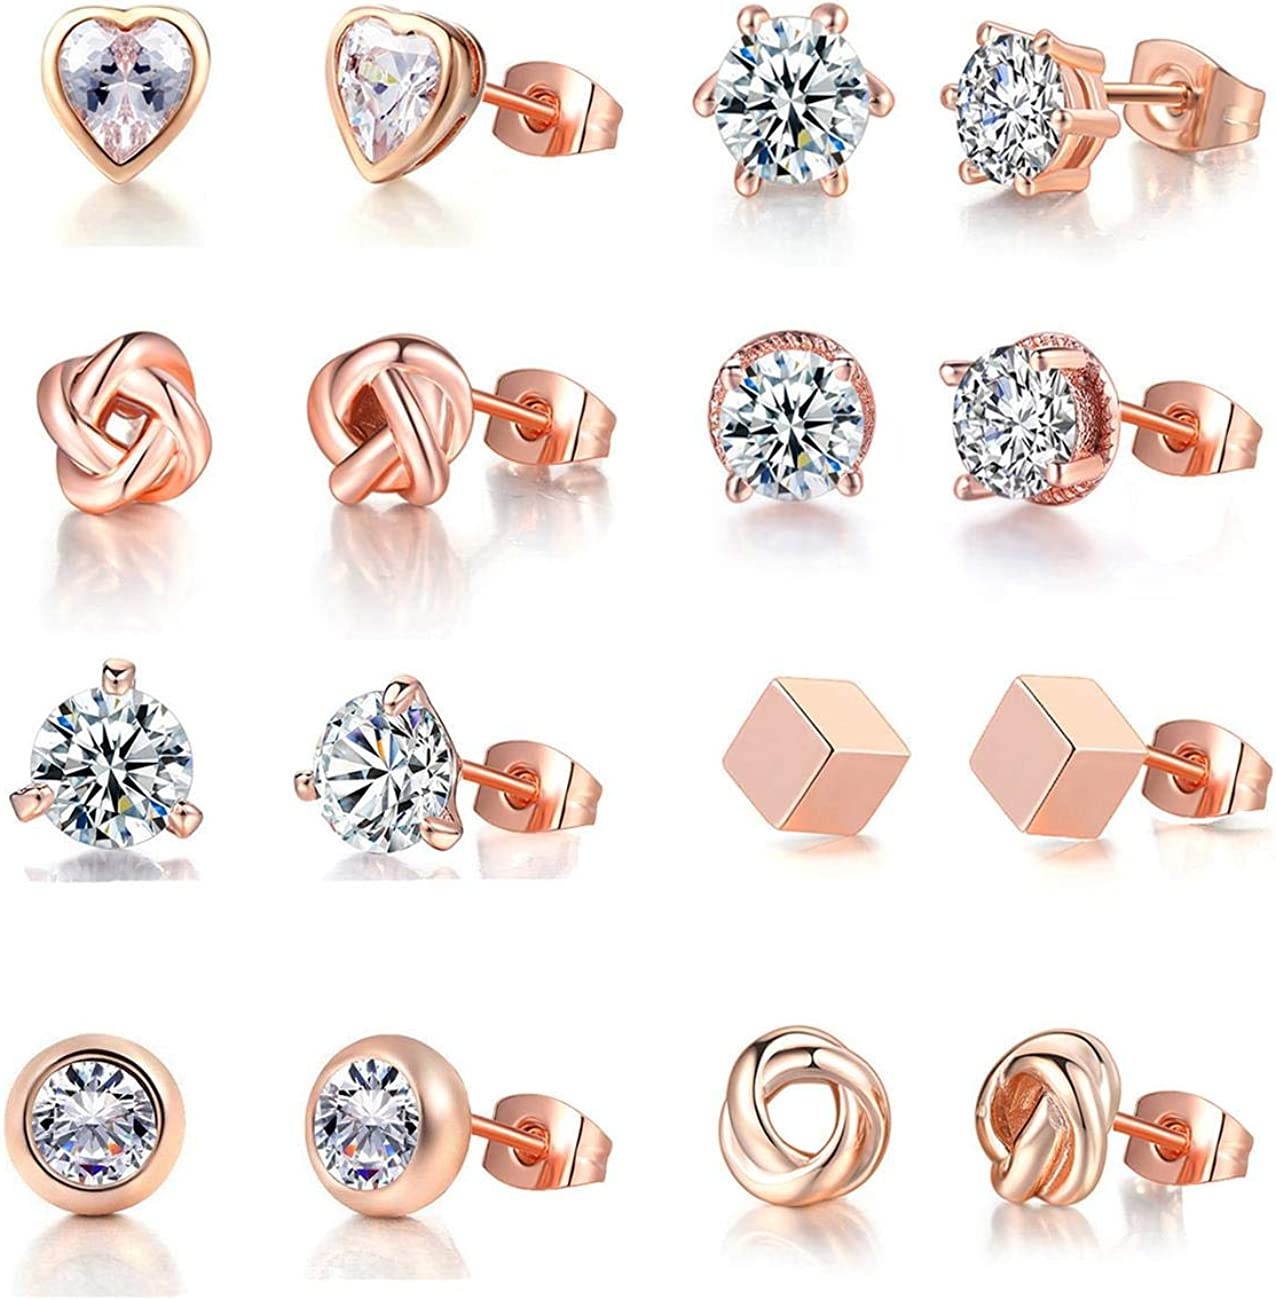 8 Pairs Rose Gold Stud Earrings Women Girls Pl for 18K Online limited Virginia Beach Mall product